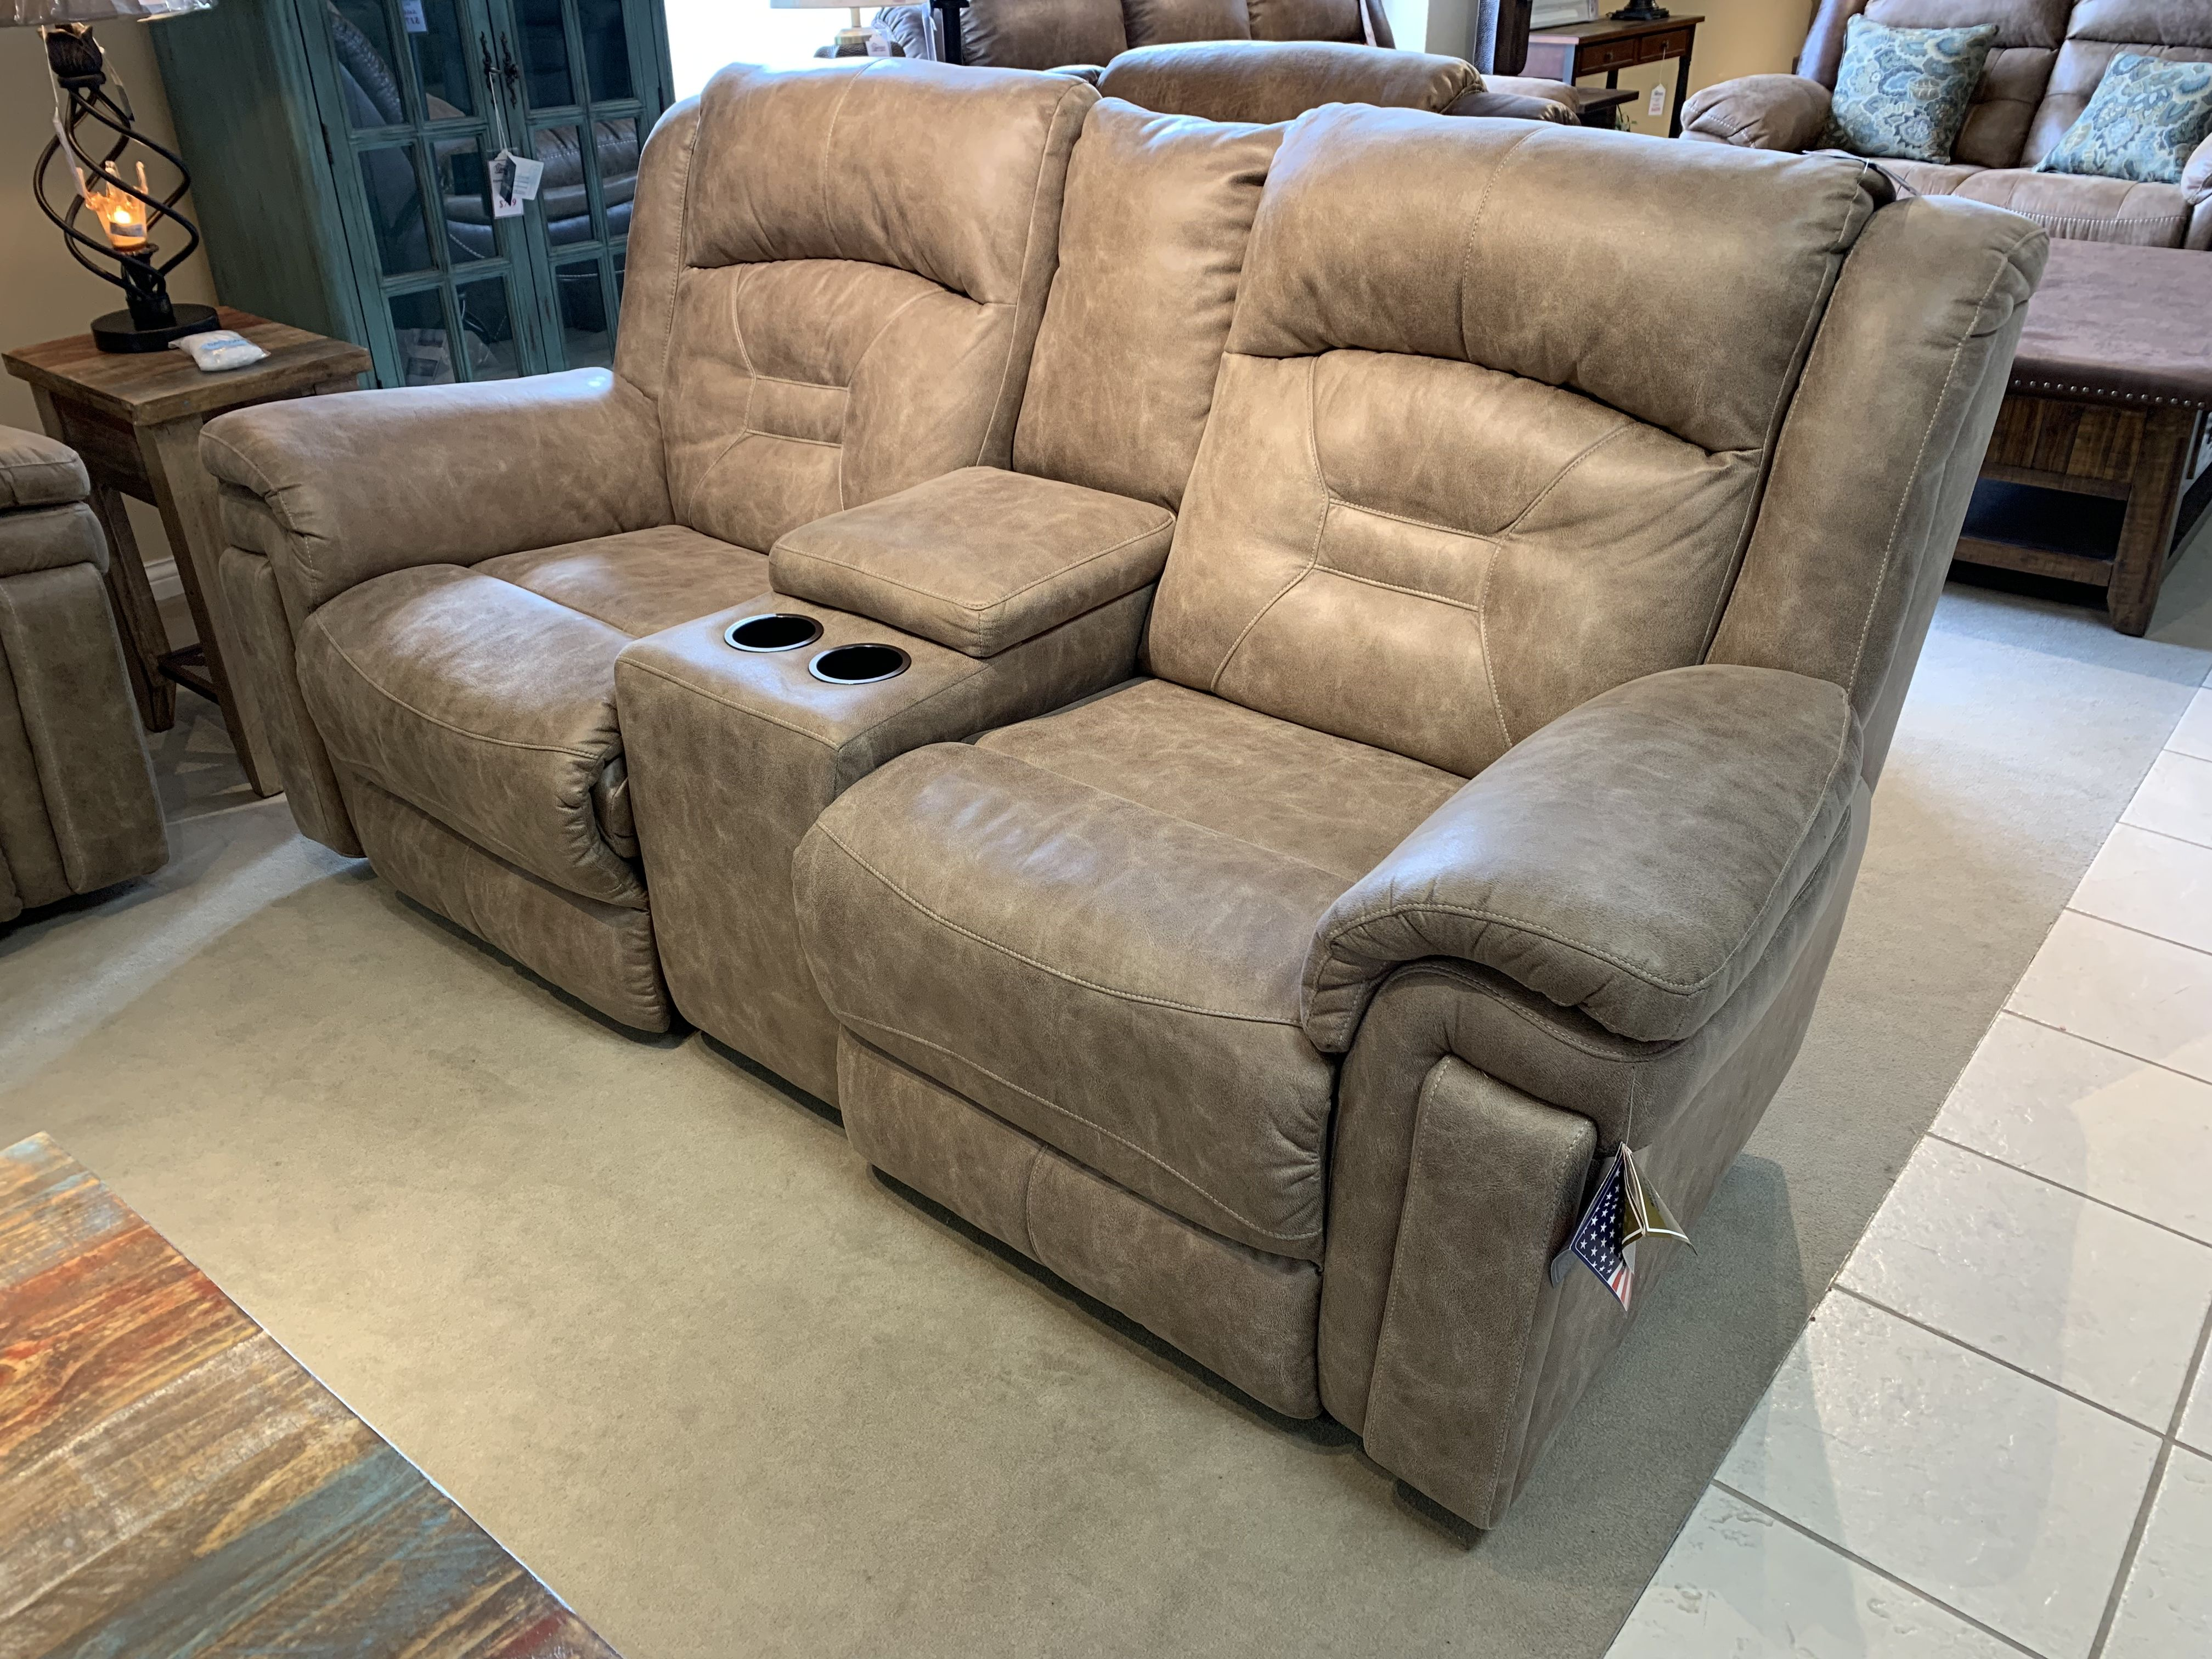 European Style In American Made Furniture The Avatar